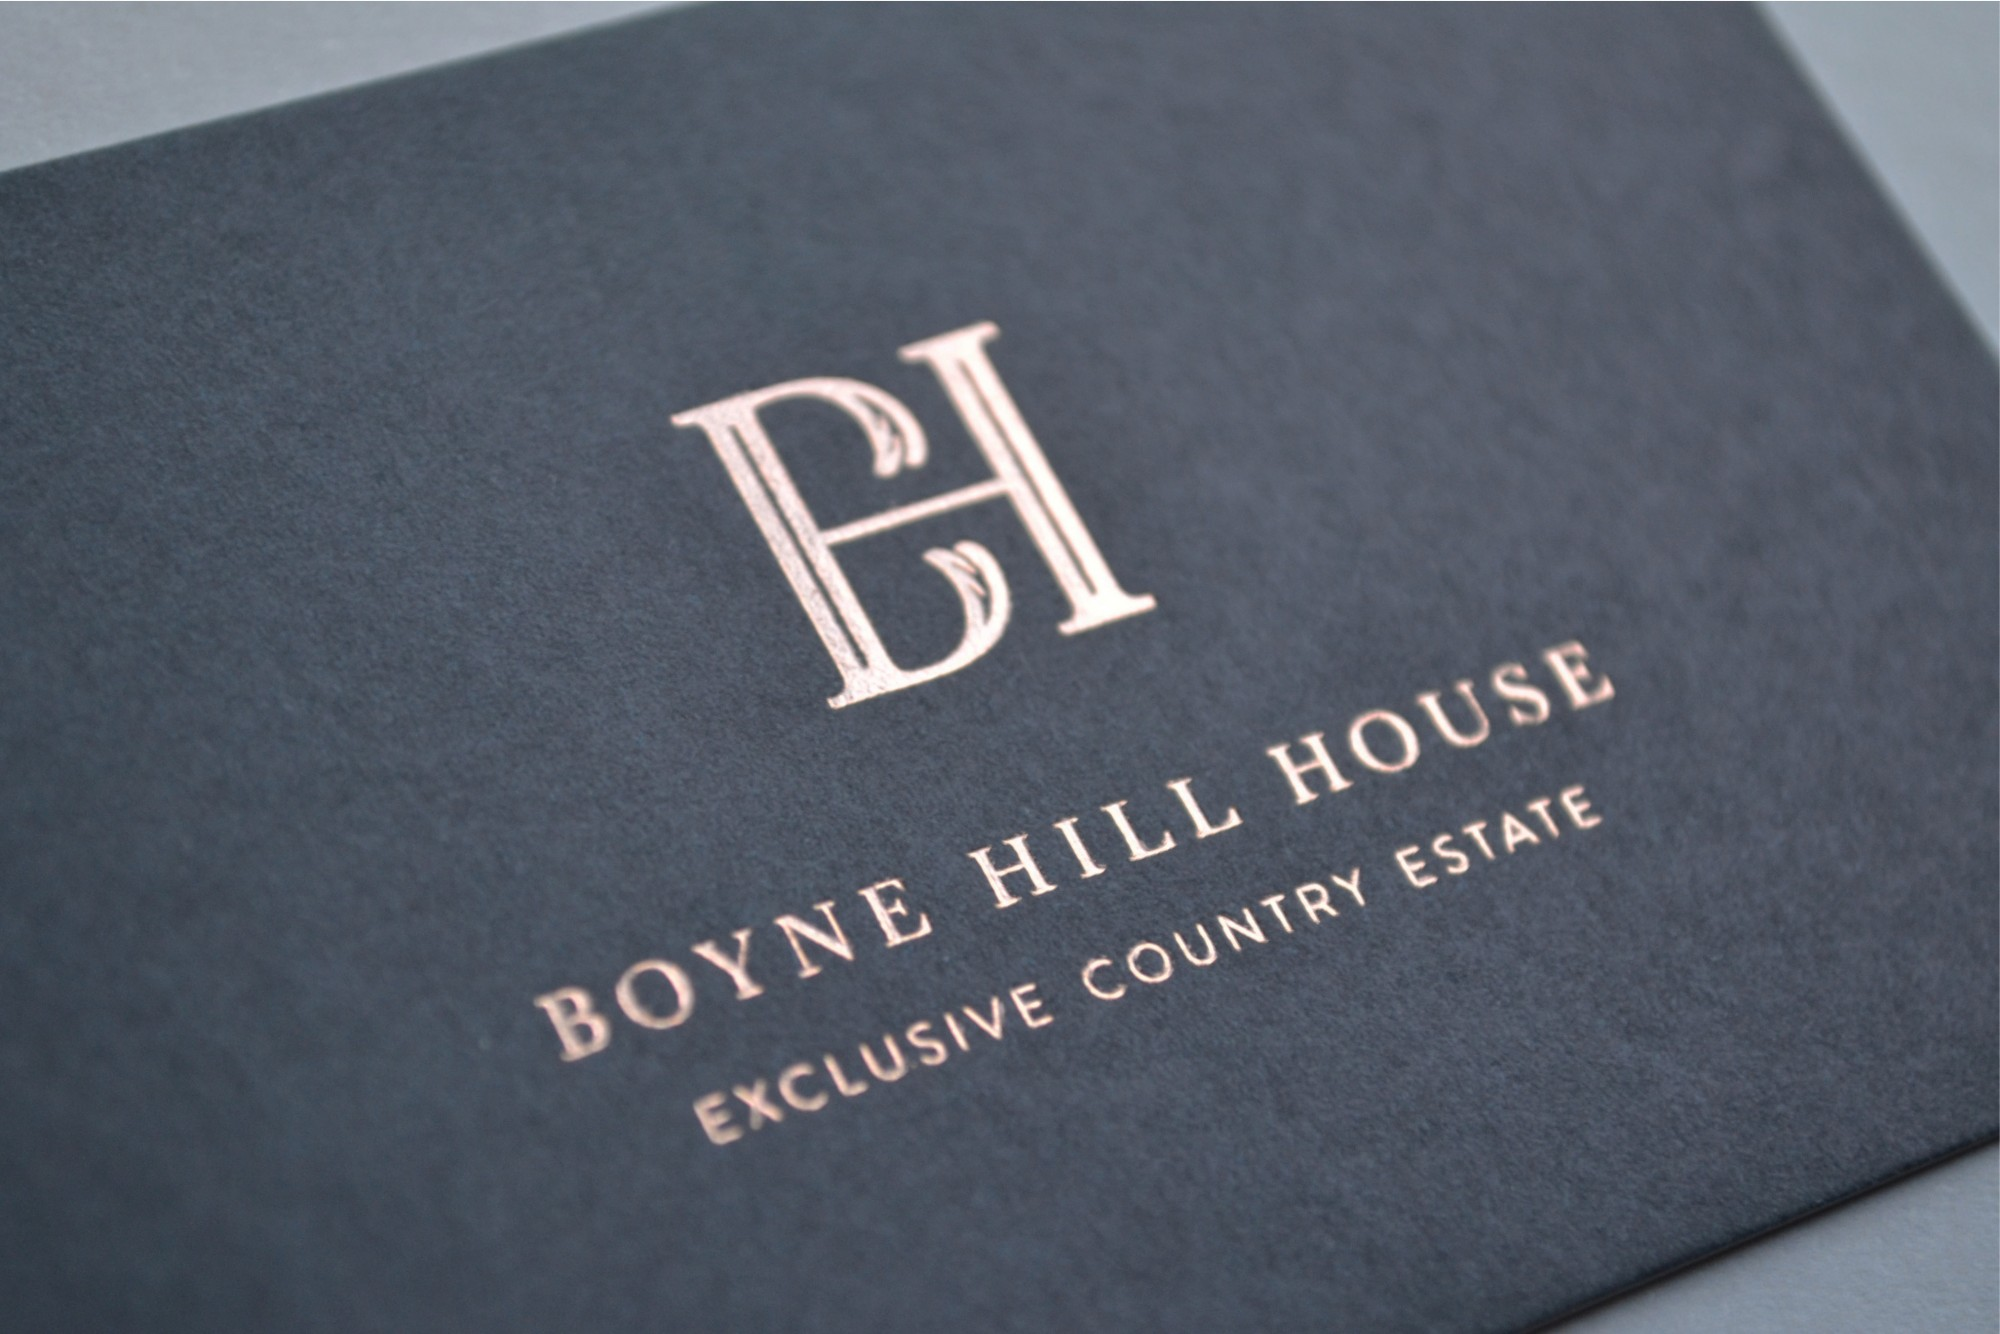 Cover image: Boyne Hill House